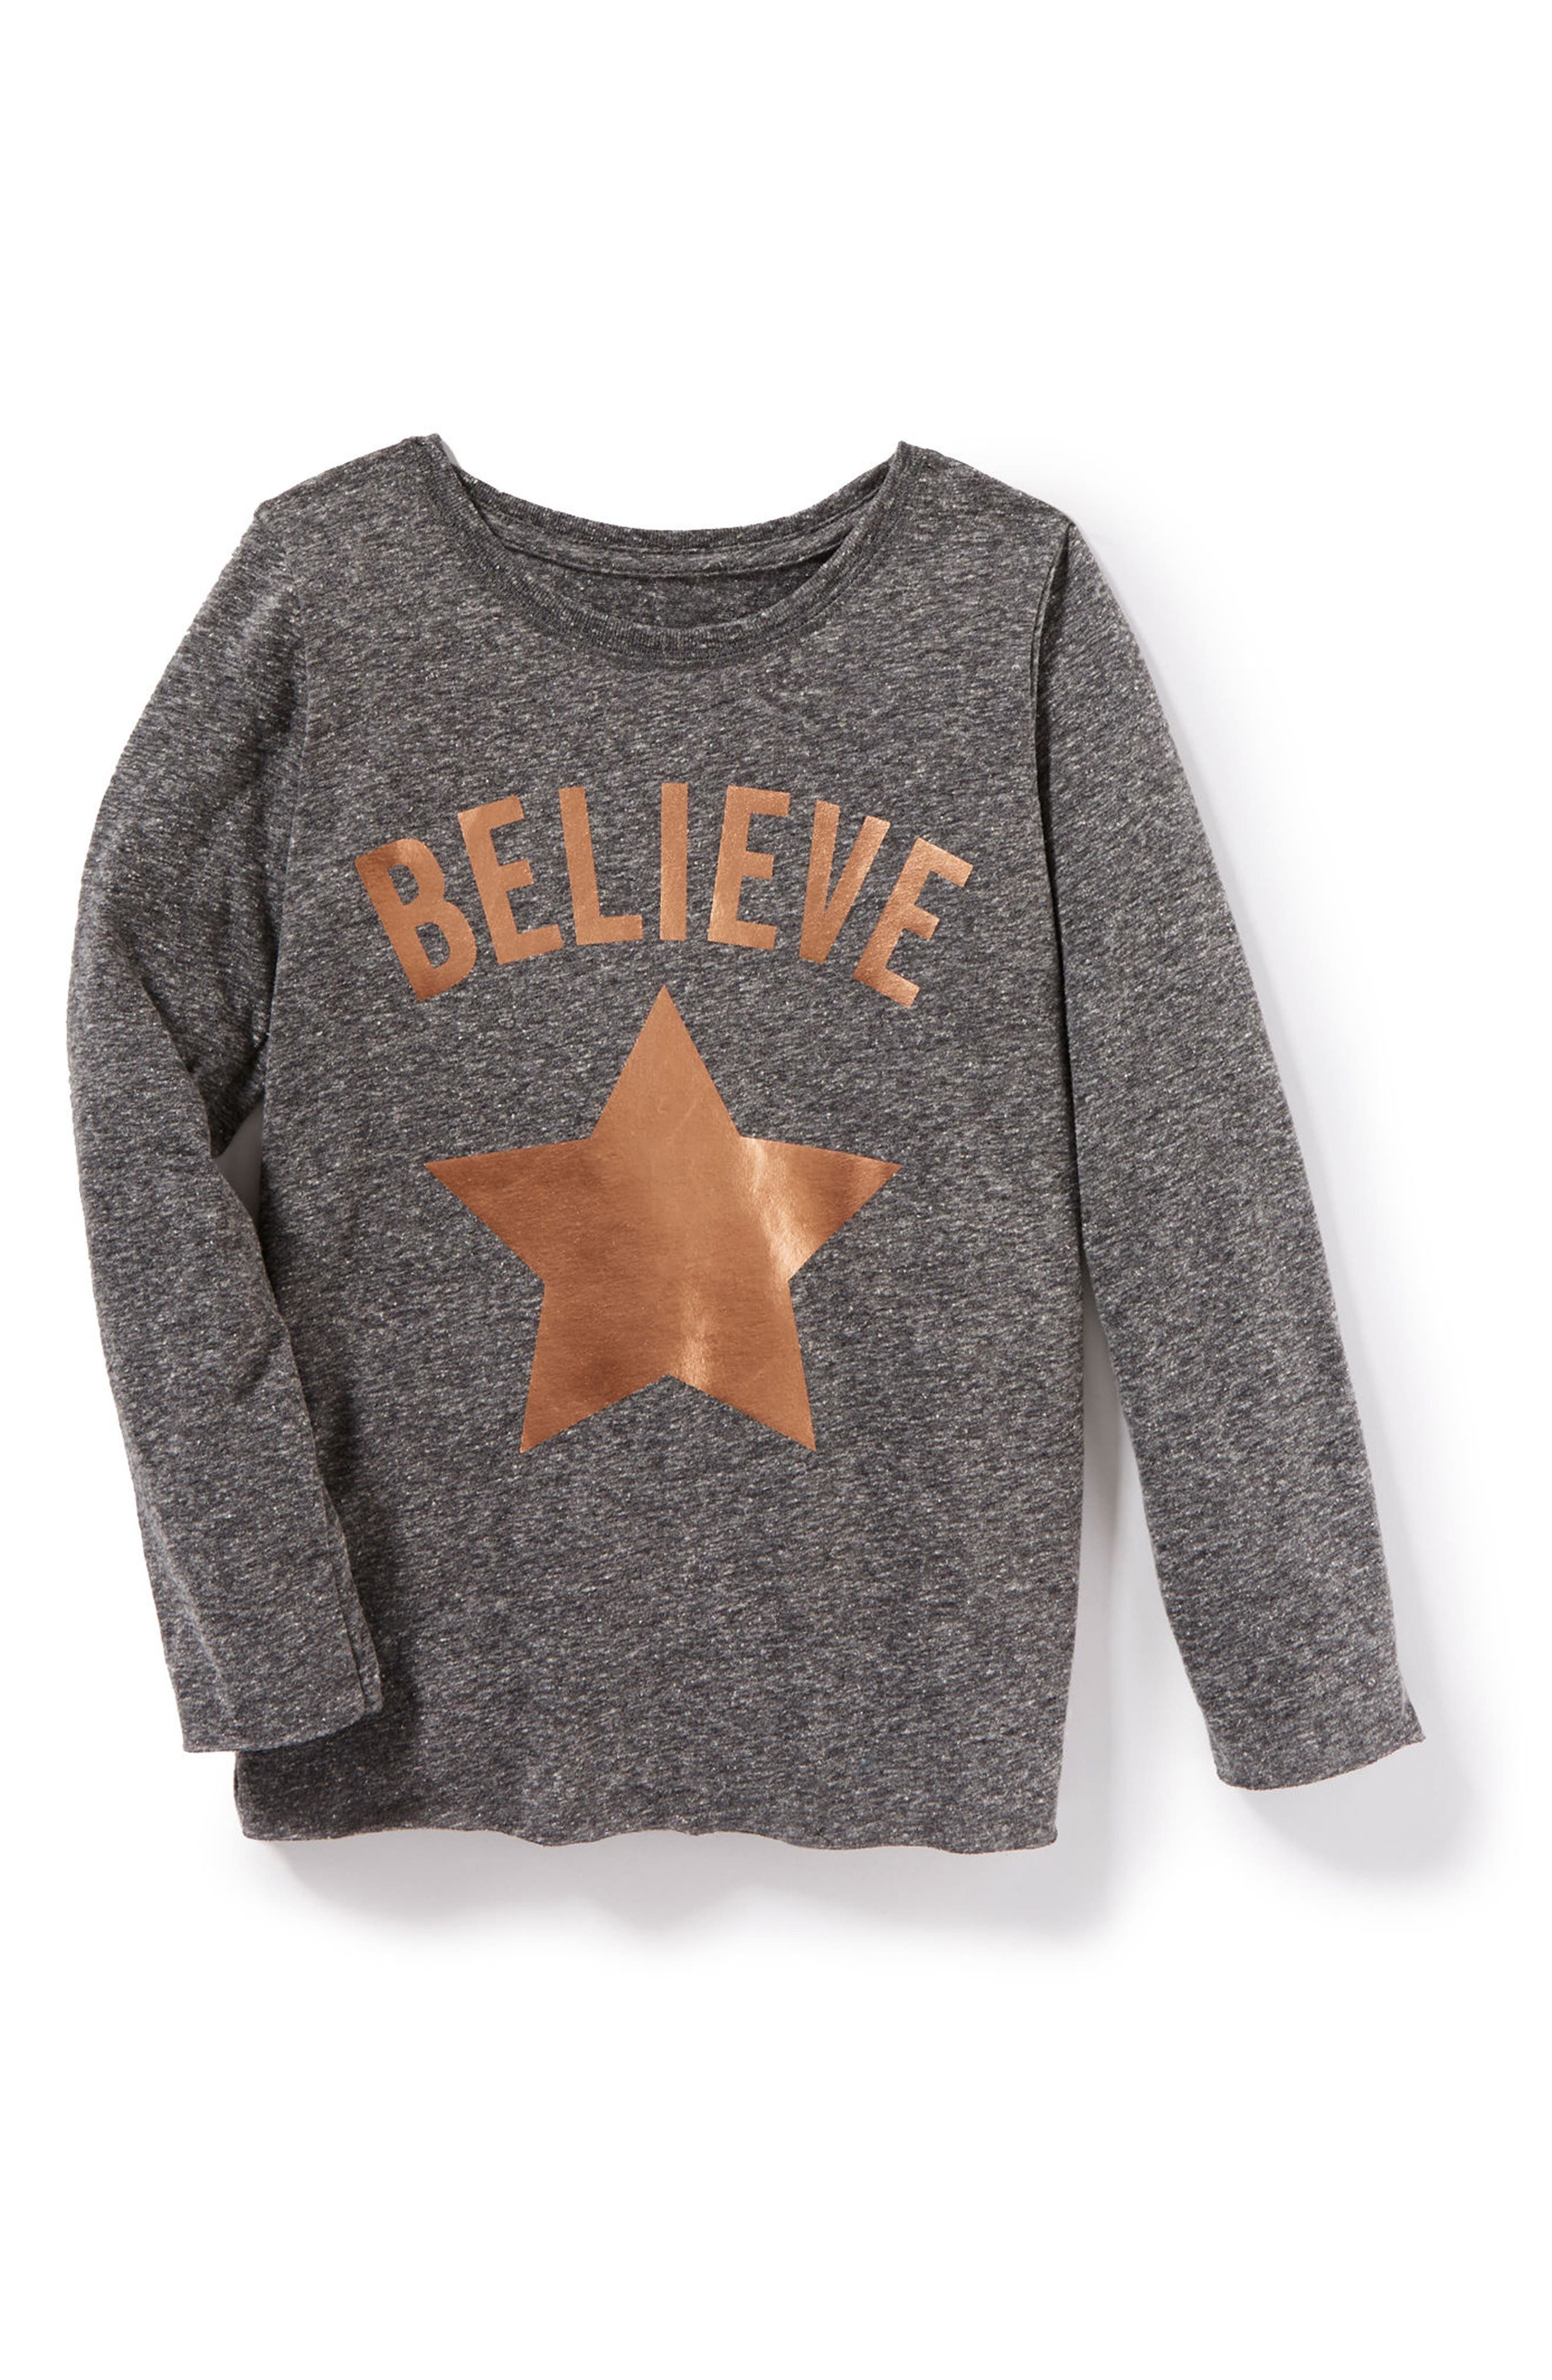 Believe Graphic Tee,                         Main,                         color, Grey Heather